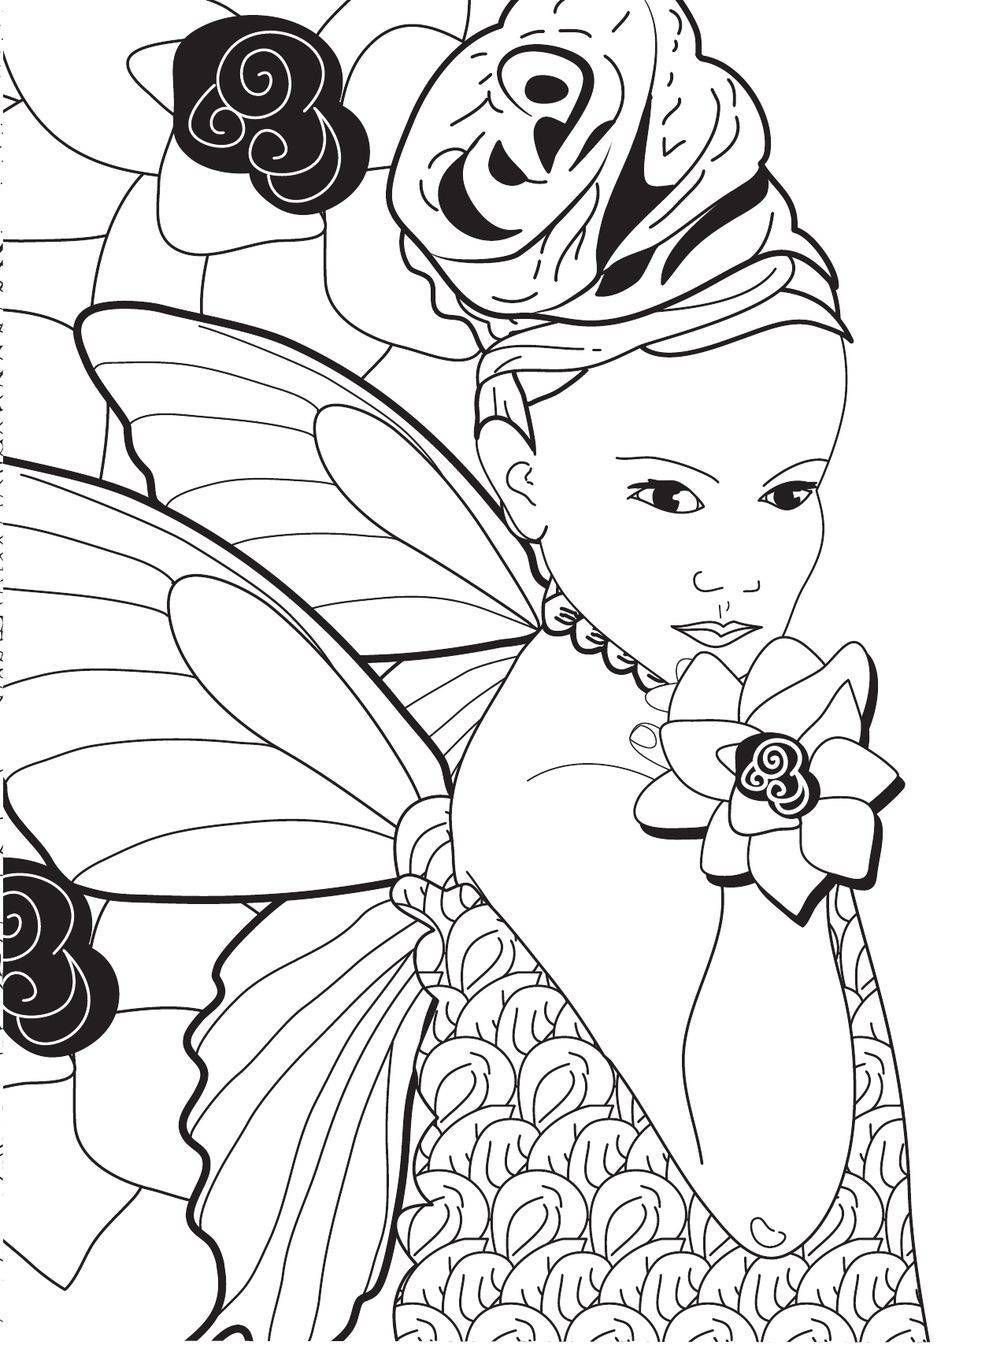 2f804dbc78e1208d90dcaf72b6c8c374 Jpg 1000 1349 Angel Coloring Pages Coloring Pages Coloring Books